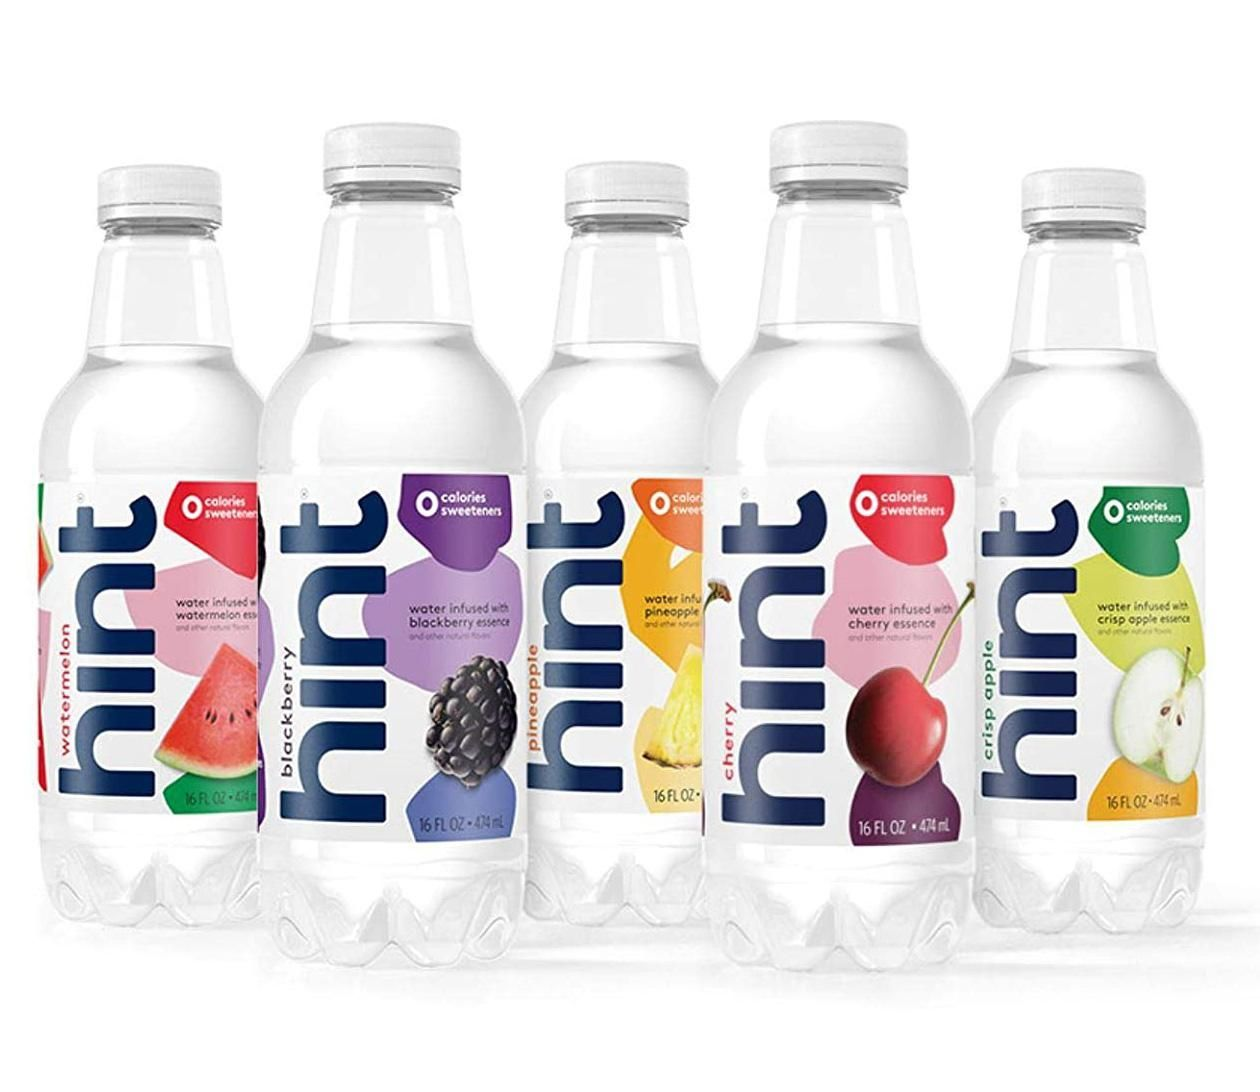 24 Hint Fruit Infused Water for 15.76! Regular Price is